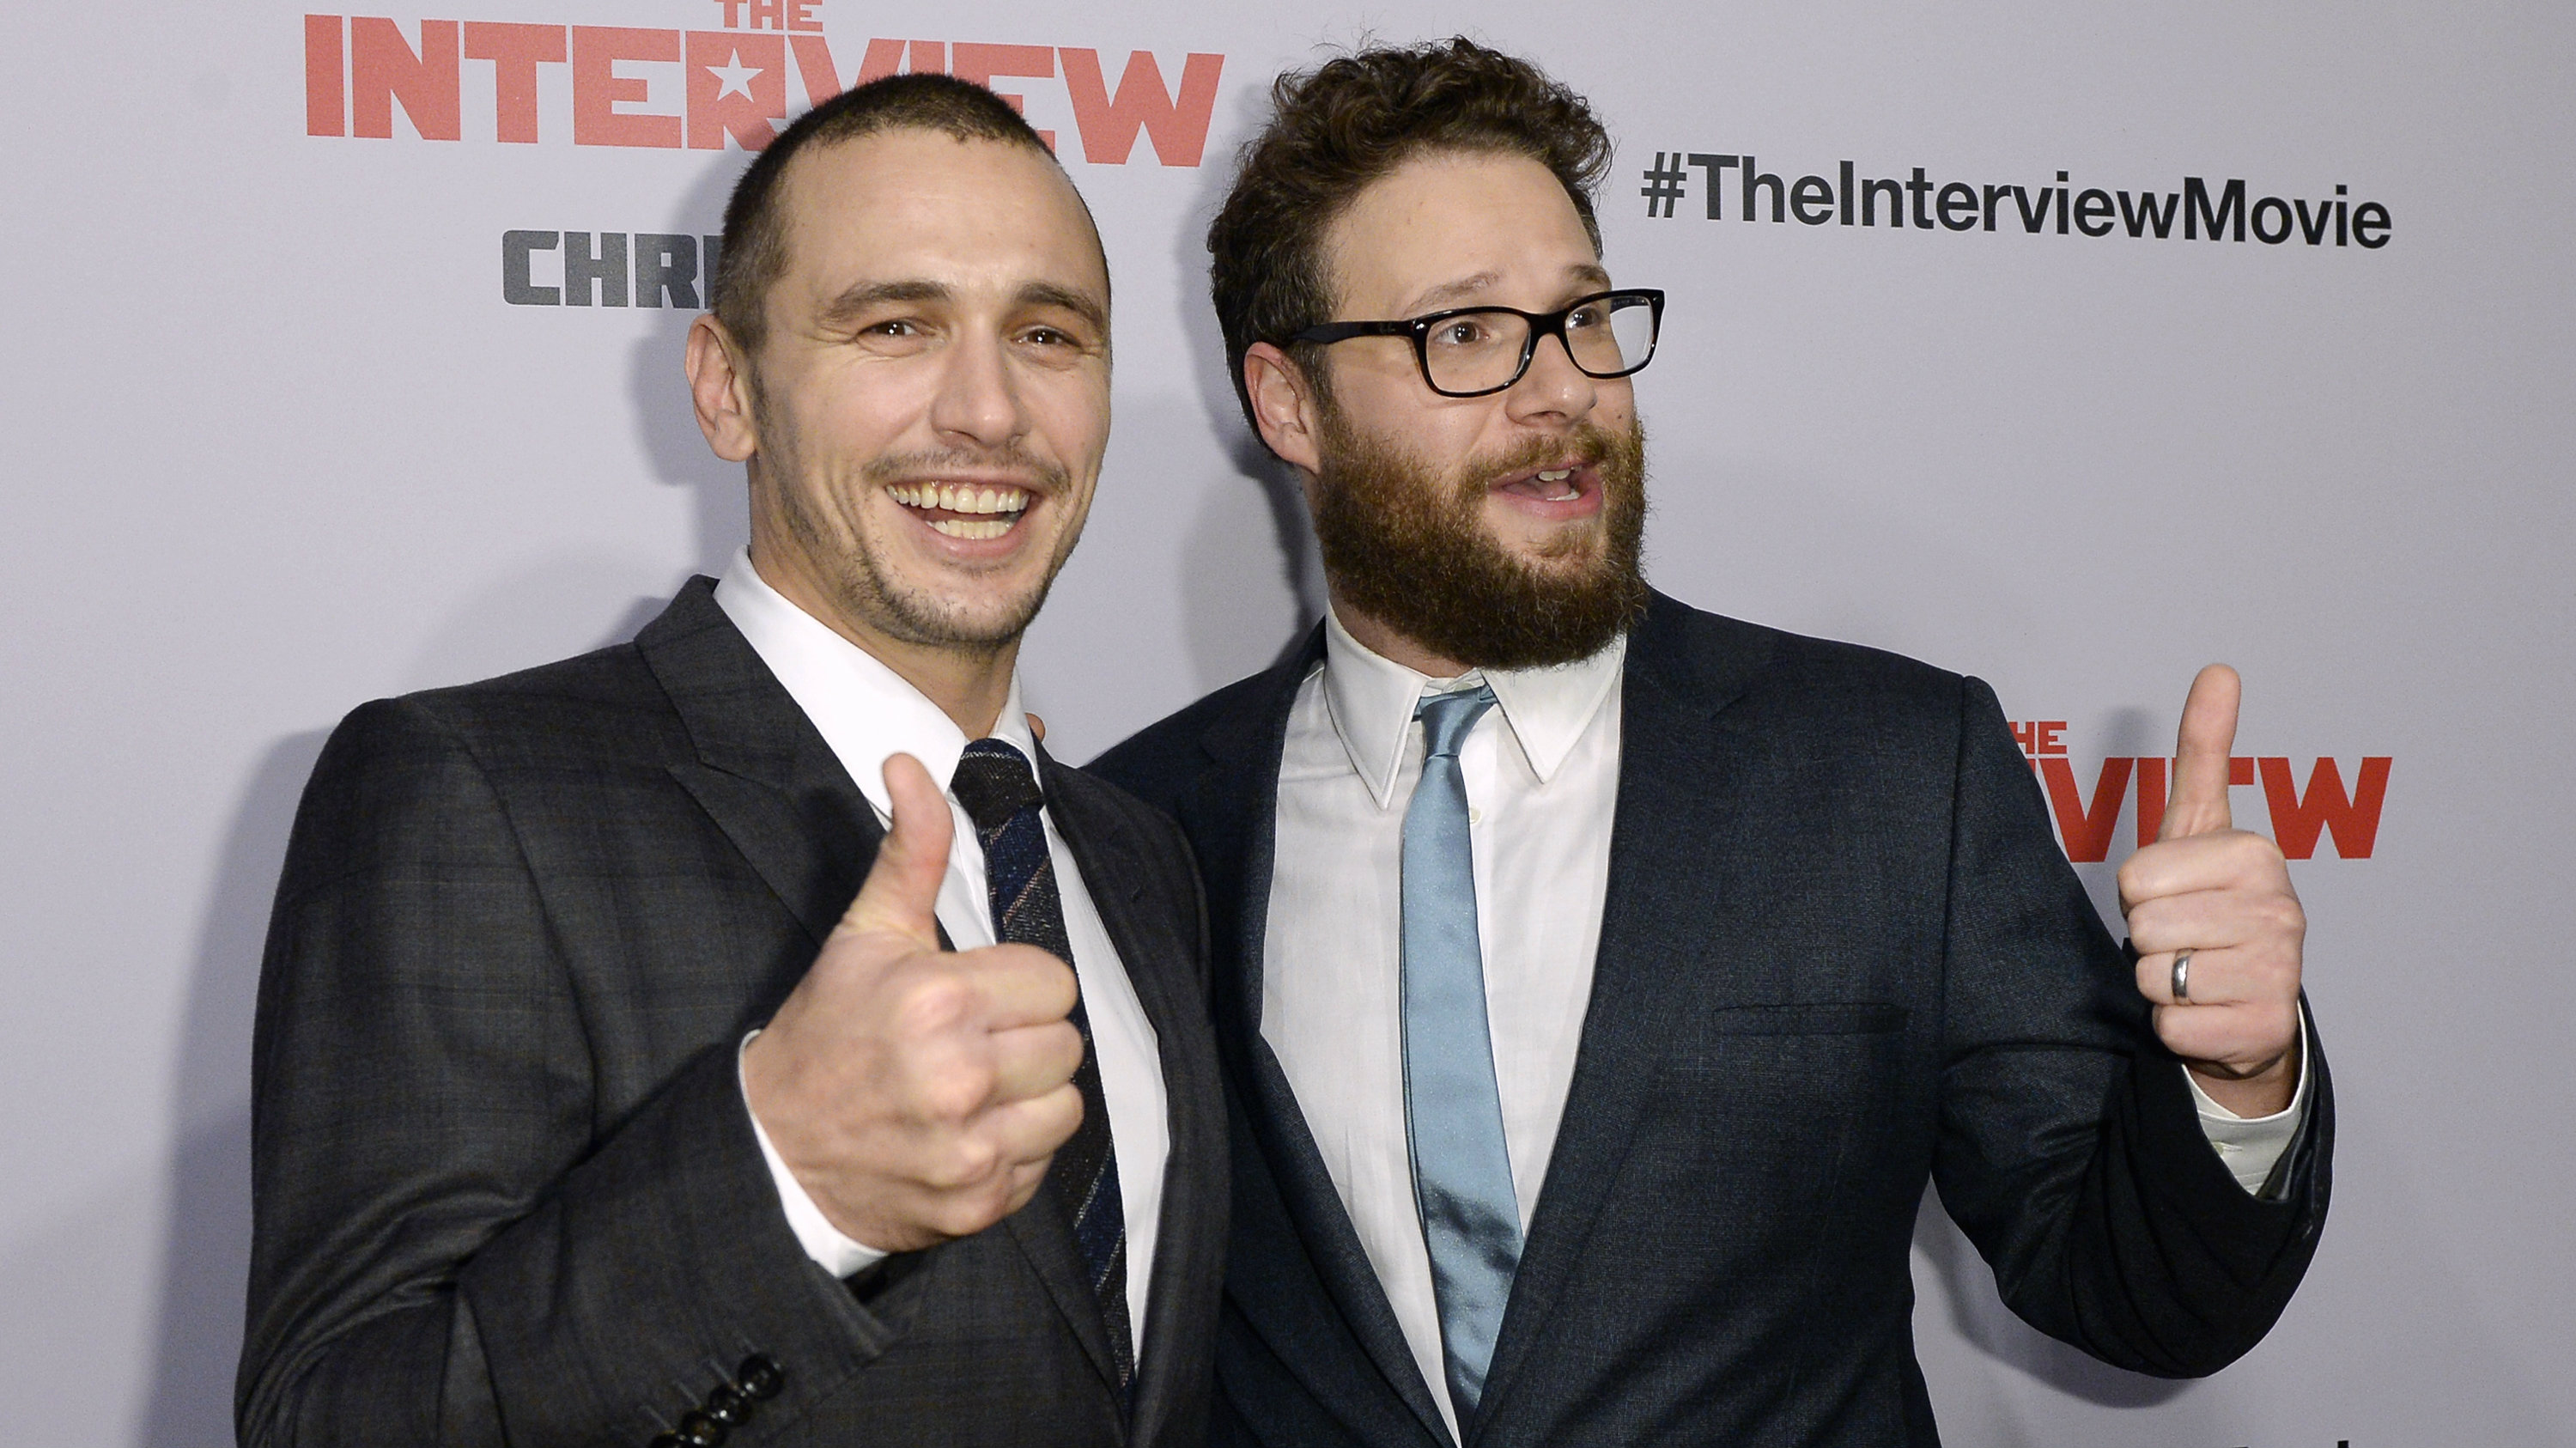 """DATE IMPORTED:December 12, 2014Cast members James Franco (L) and Seth Rogen pose during the premiere of the film """"The Interview"""" in Los Angeles, California December 11, 2014. REUTERS/Kevork Djansezian ("""